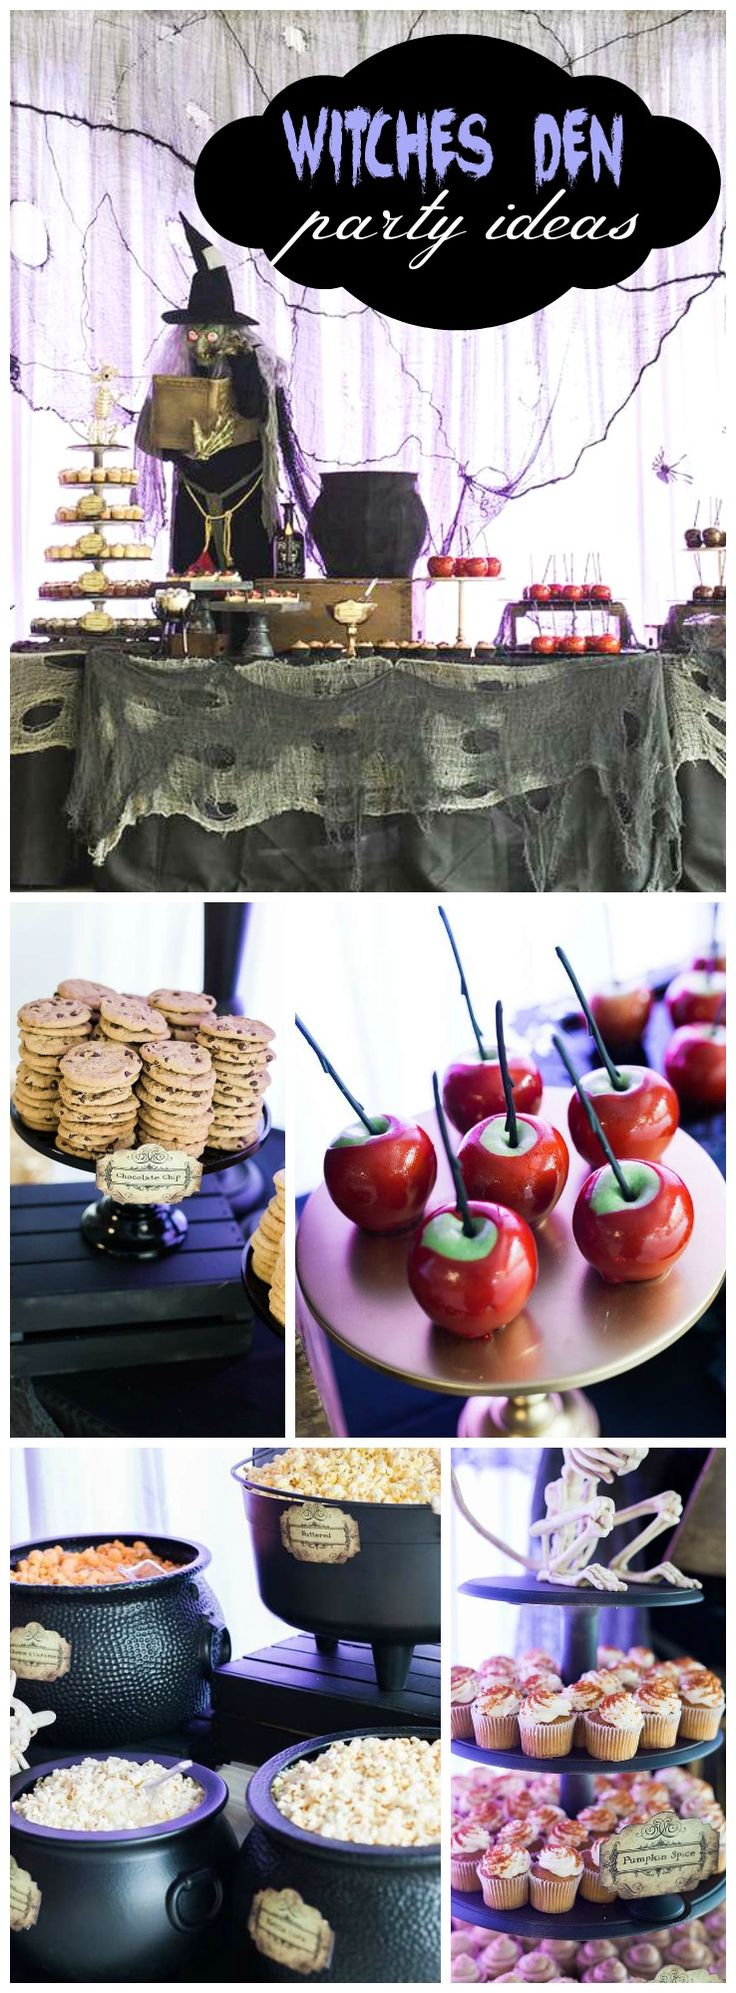 Here's a Witches Den party with lots of spooky treats! See more party ideas at CatchMyParty.com!